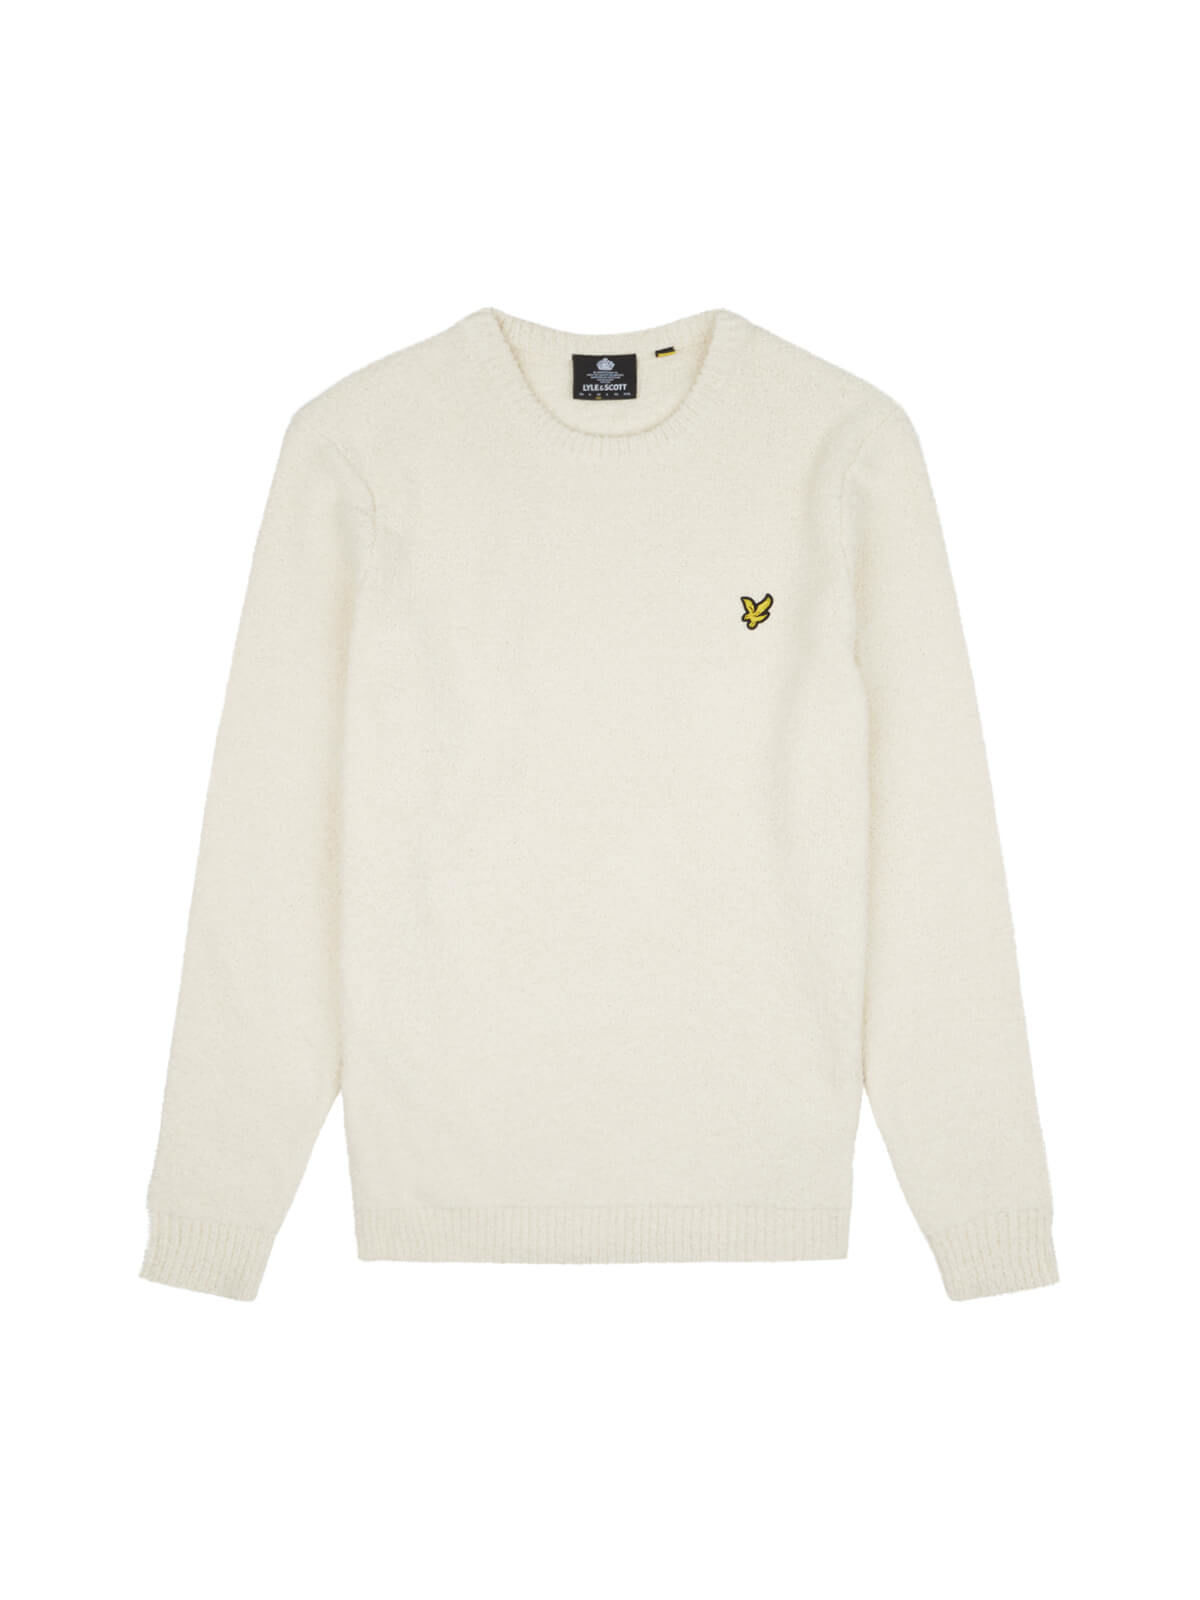 Lyle and Scott Seashell White Towelling Jumper